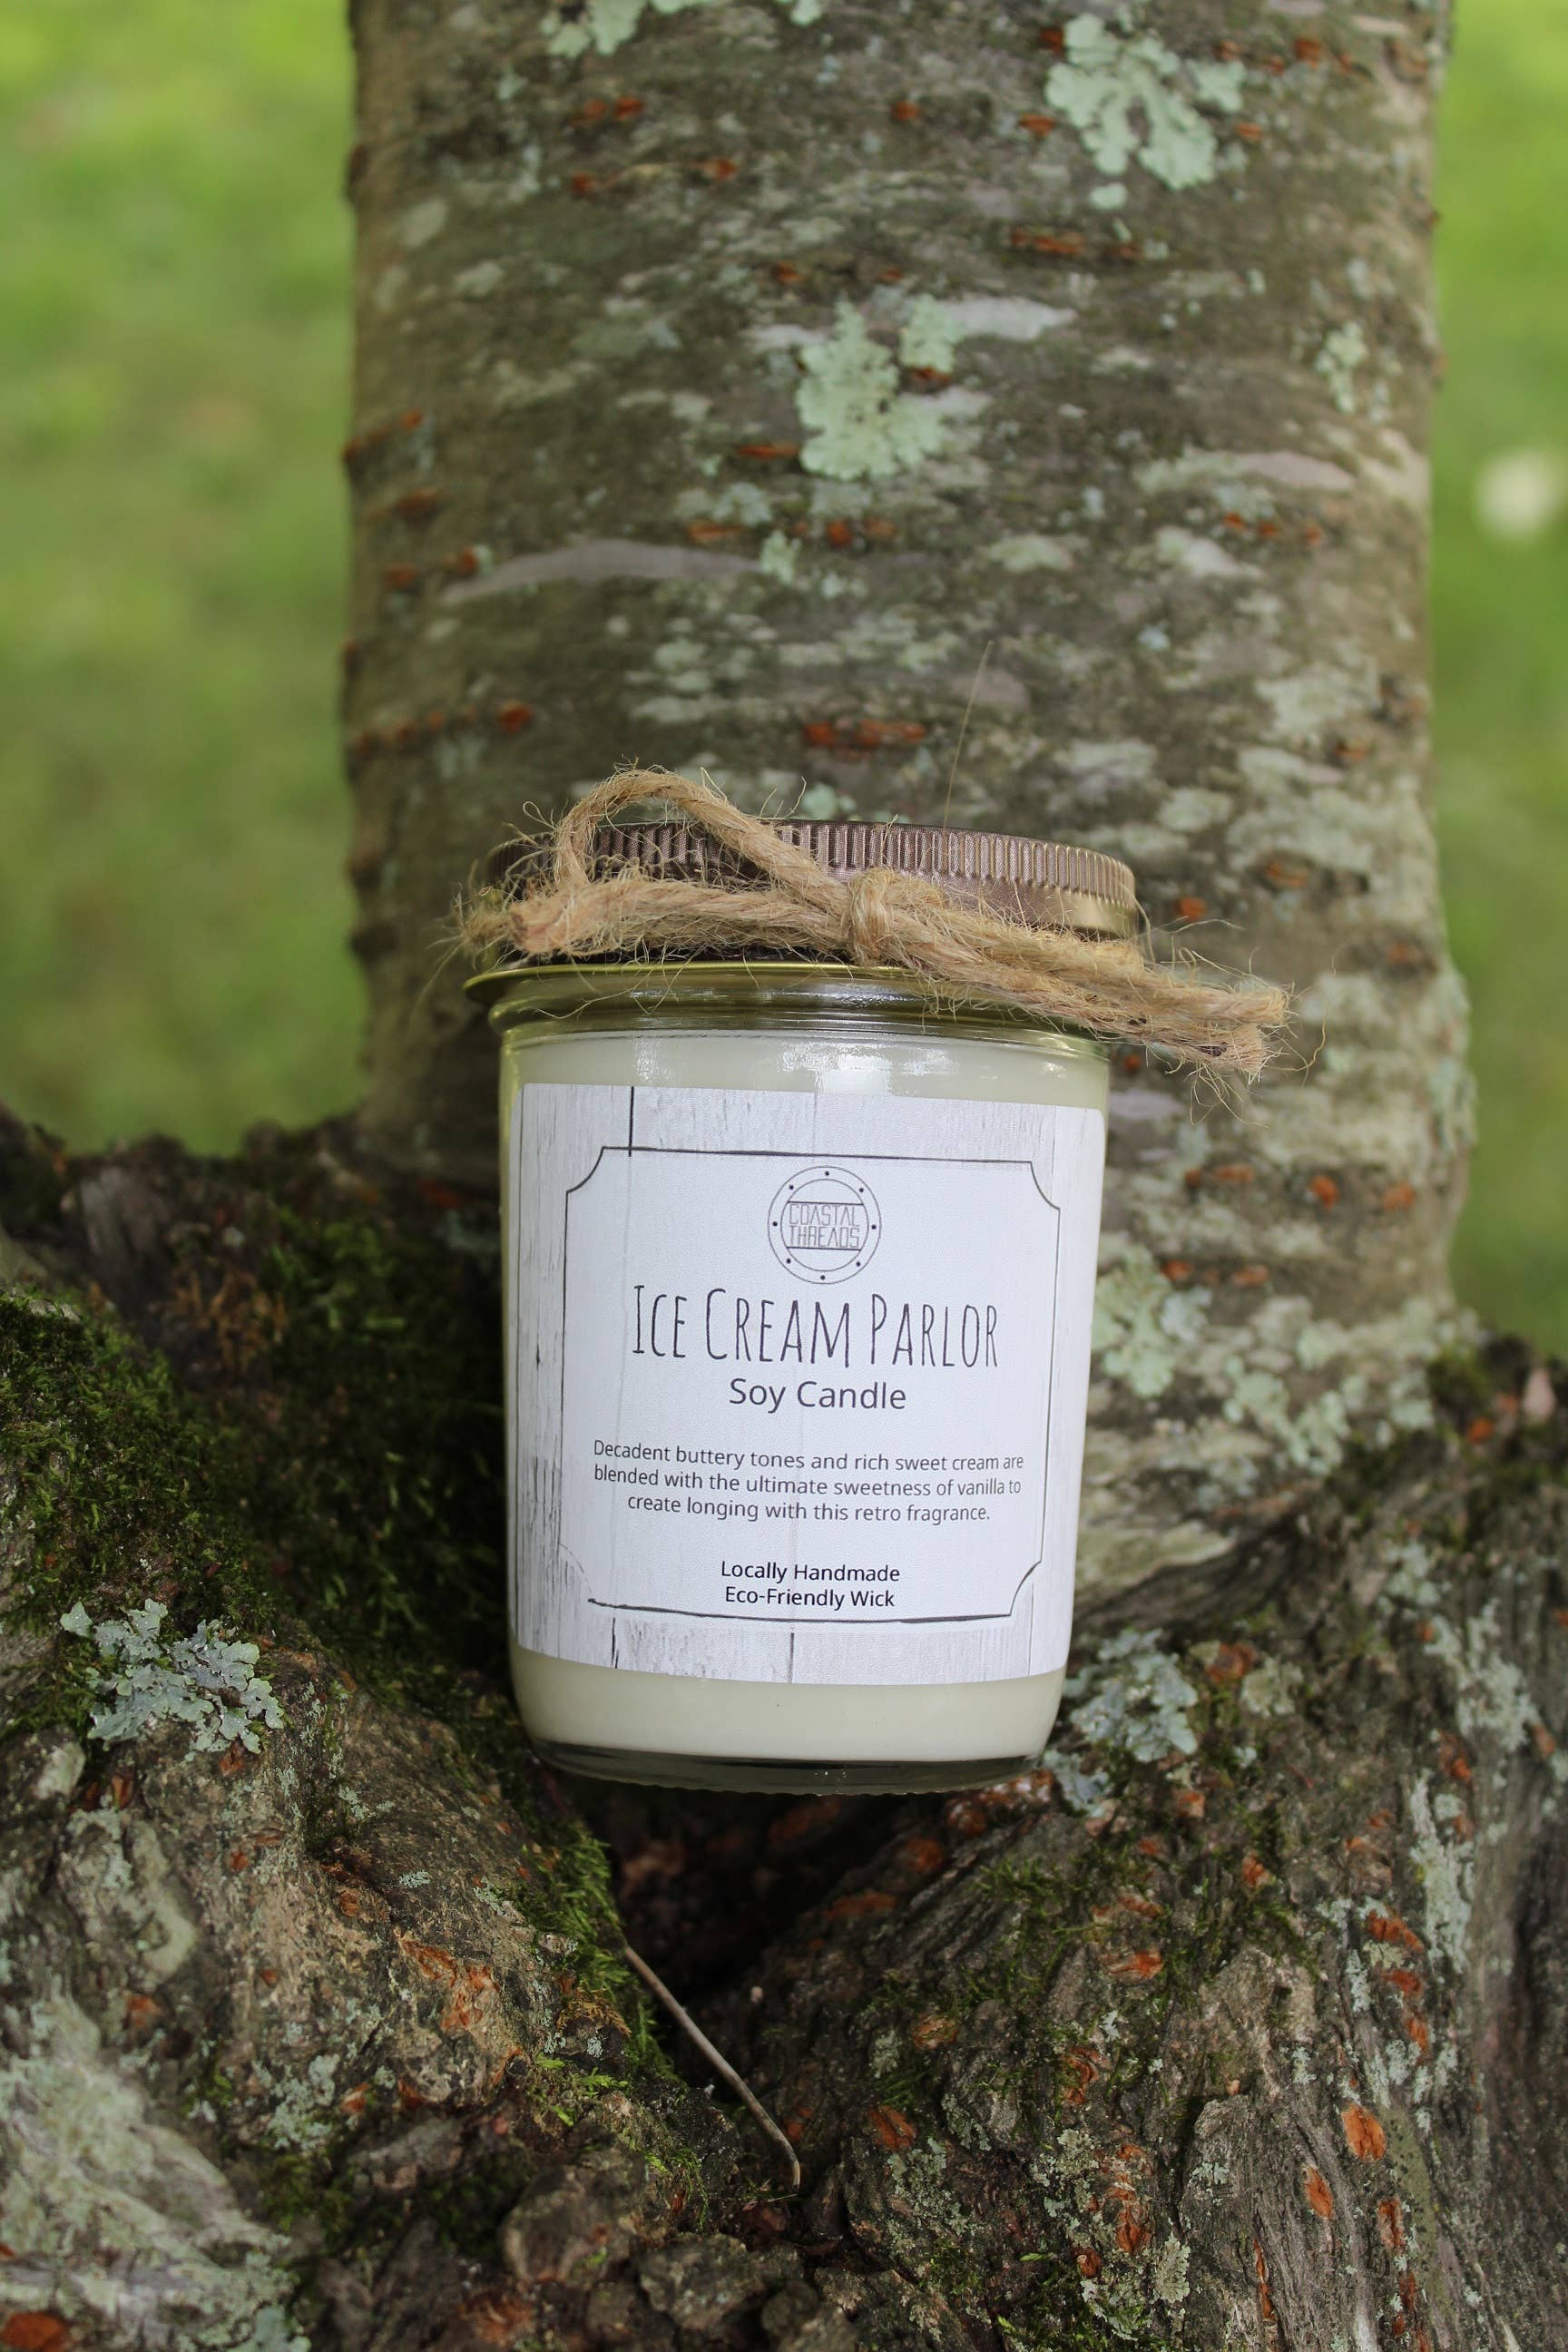 Ice Cream Parlor Soy Candle | Trada Marketplace